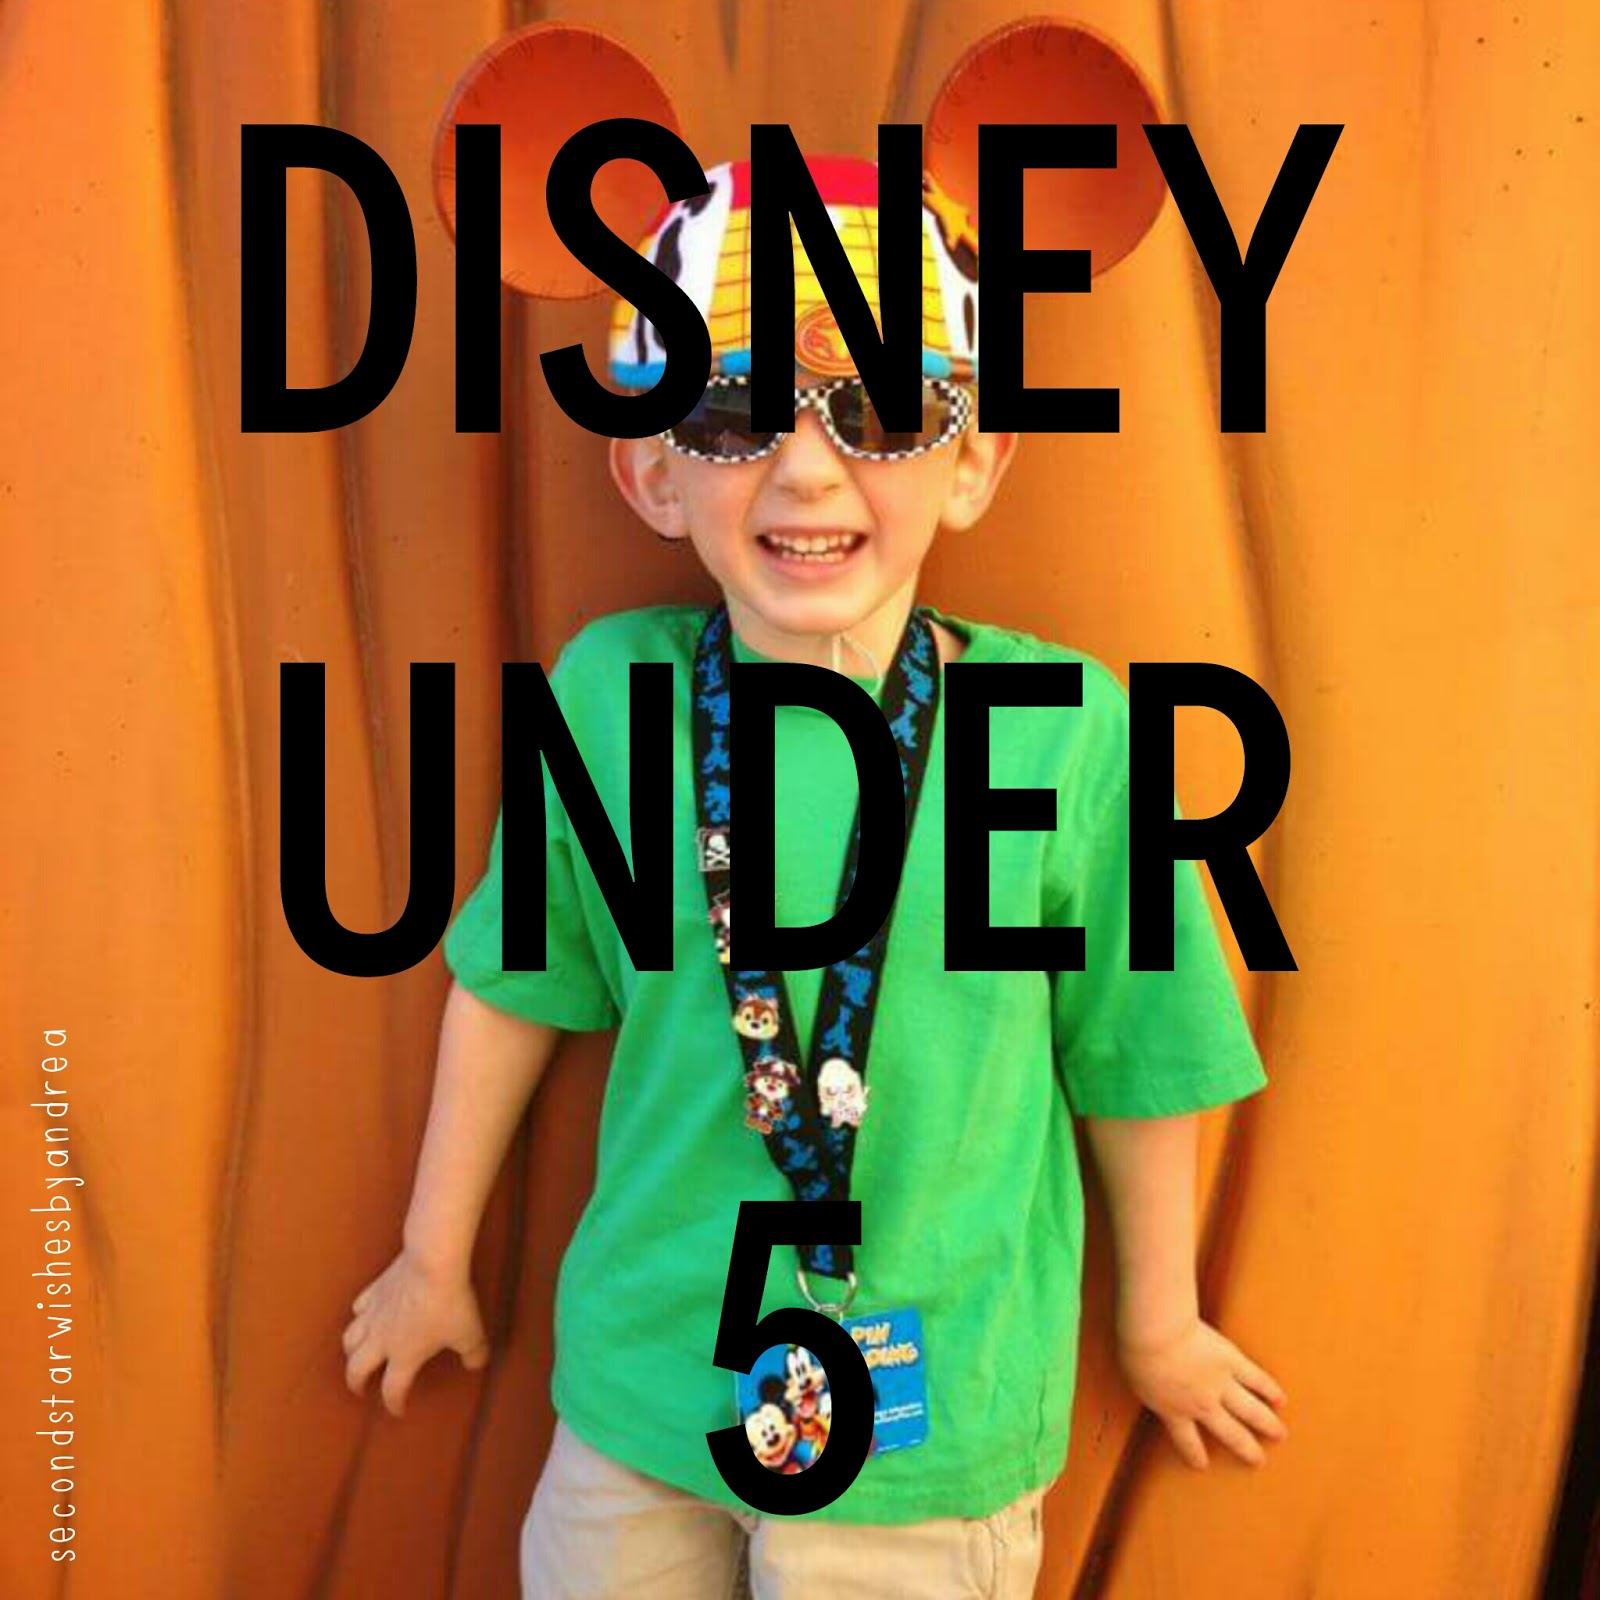 Disney Under 5 Part I: What Do I Need To Know Before The Magic Begins?